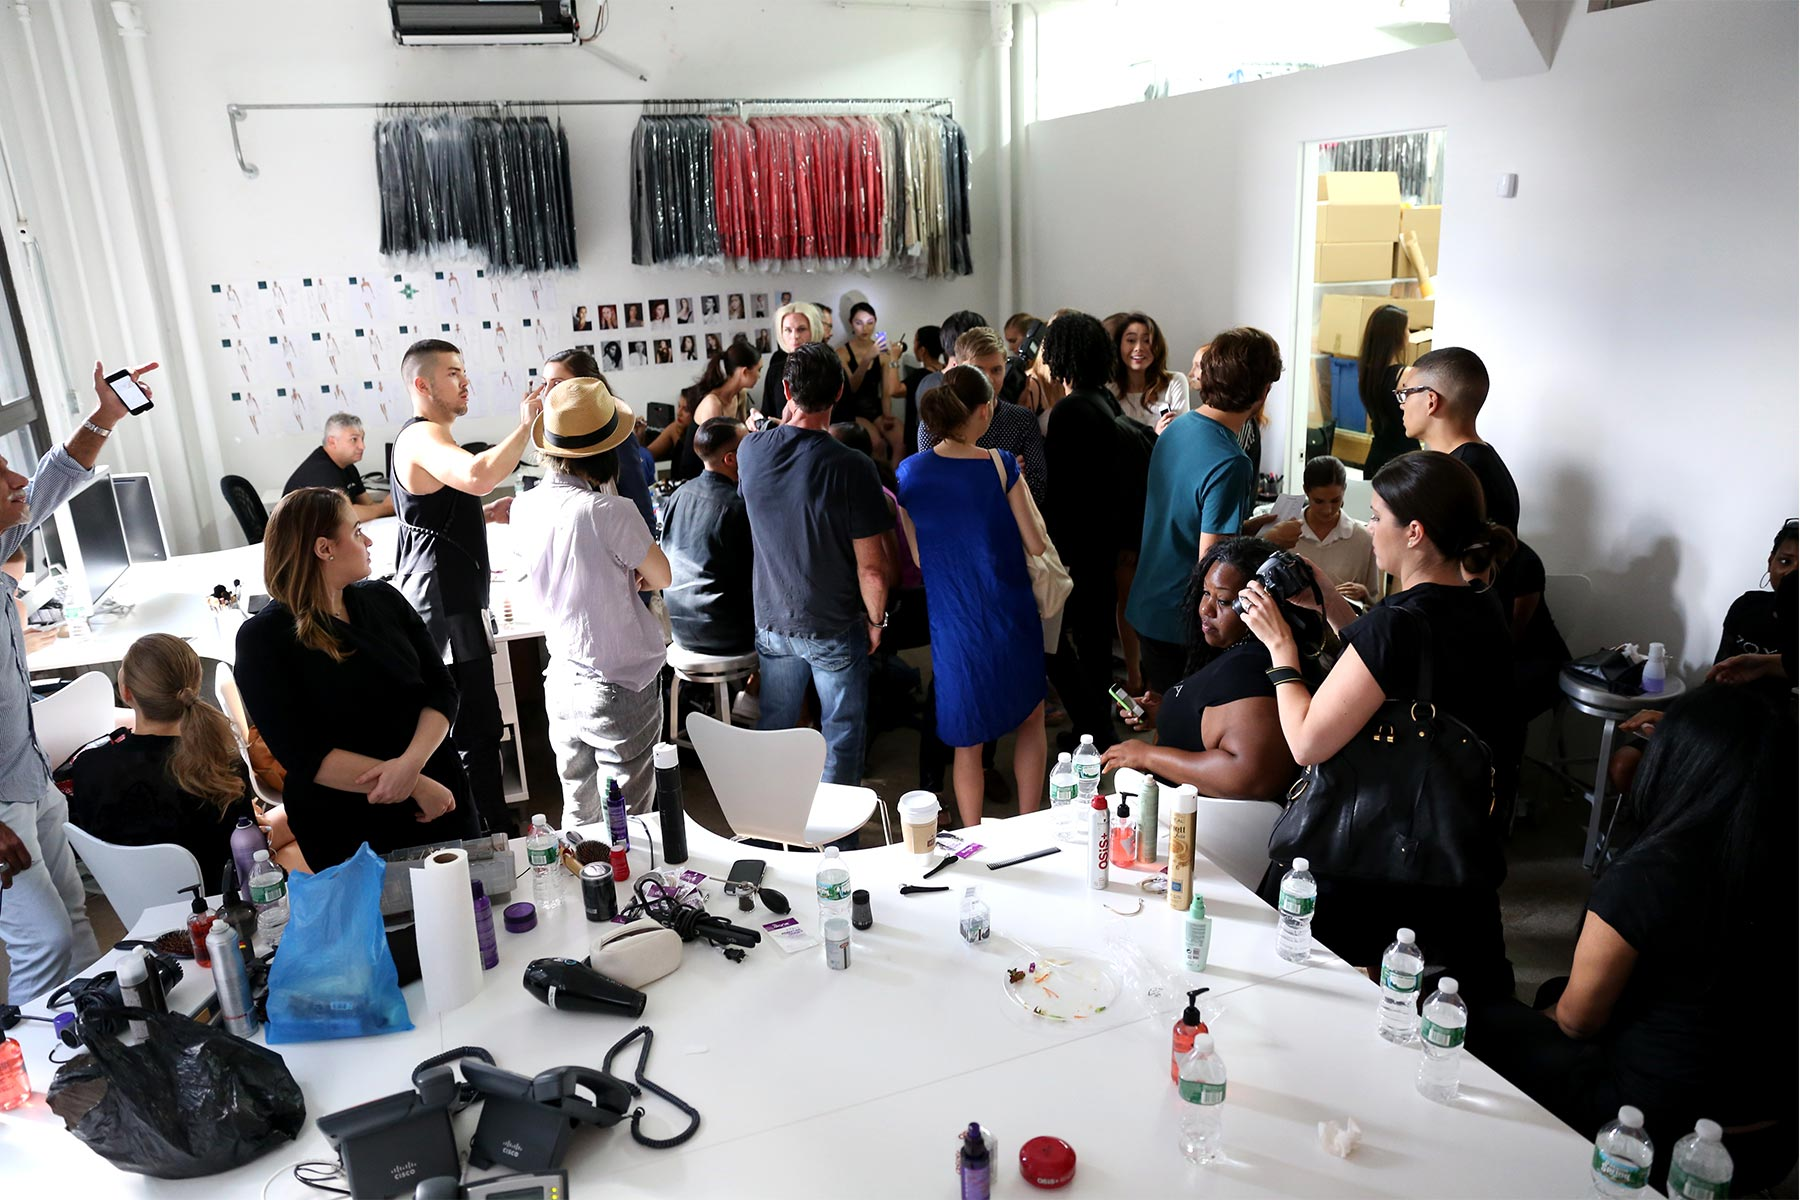 Behind scenes ROLANDO SANTANA S/S 2015 New York Fashion Week